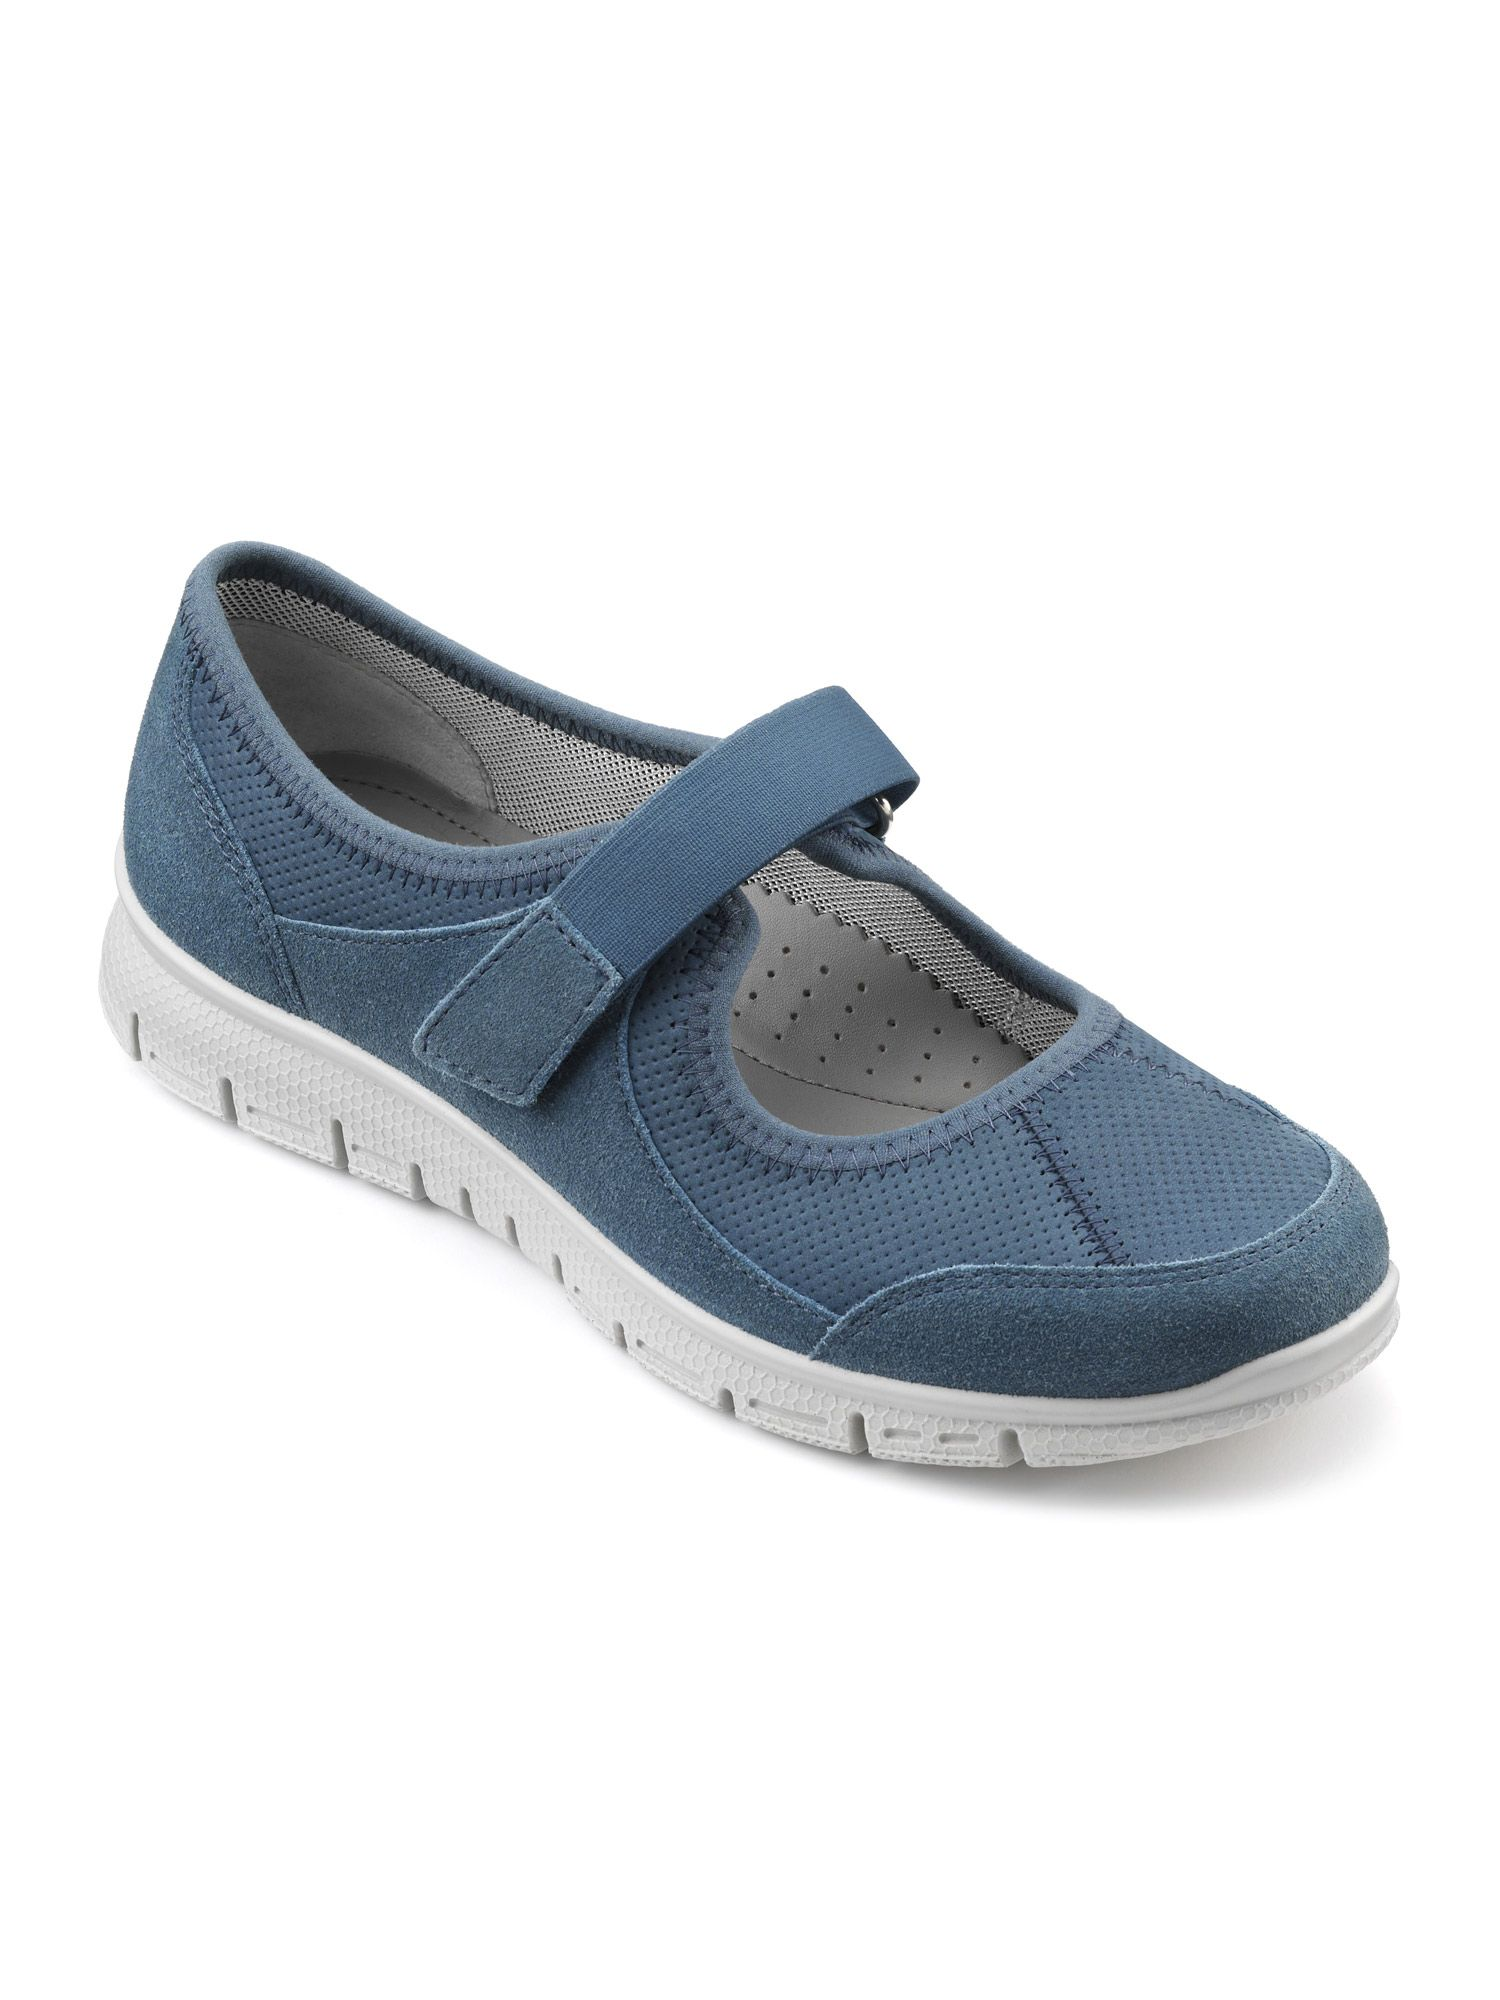 Hotter Aura Ladies Active Shoe, Blue